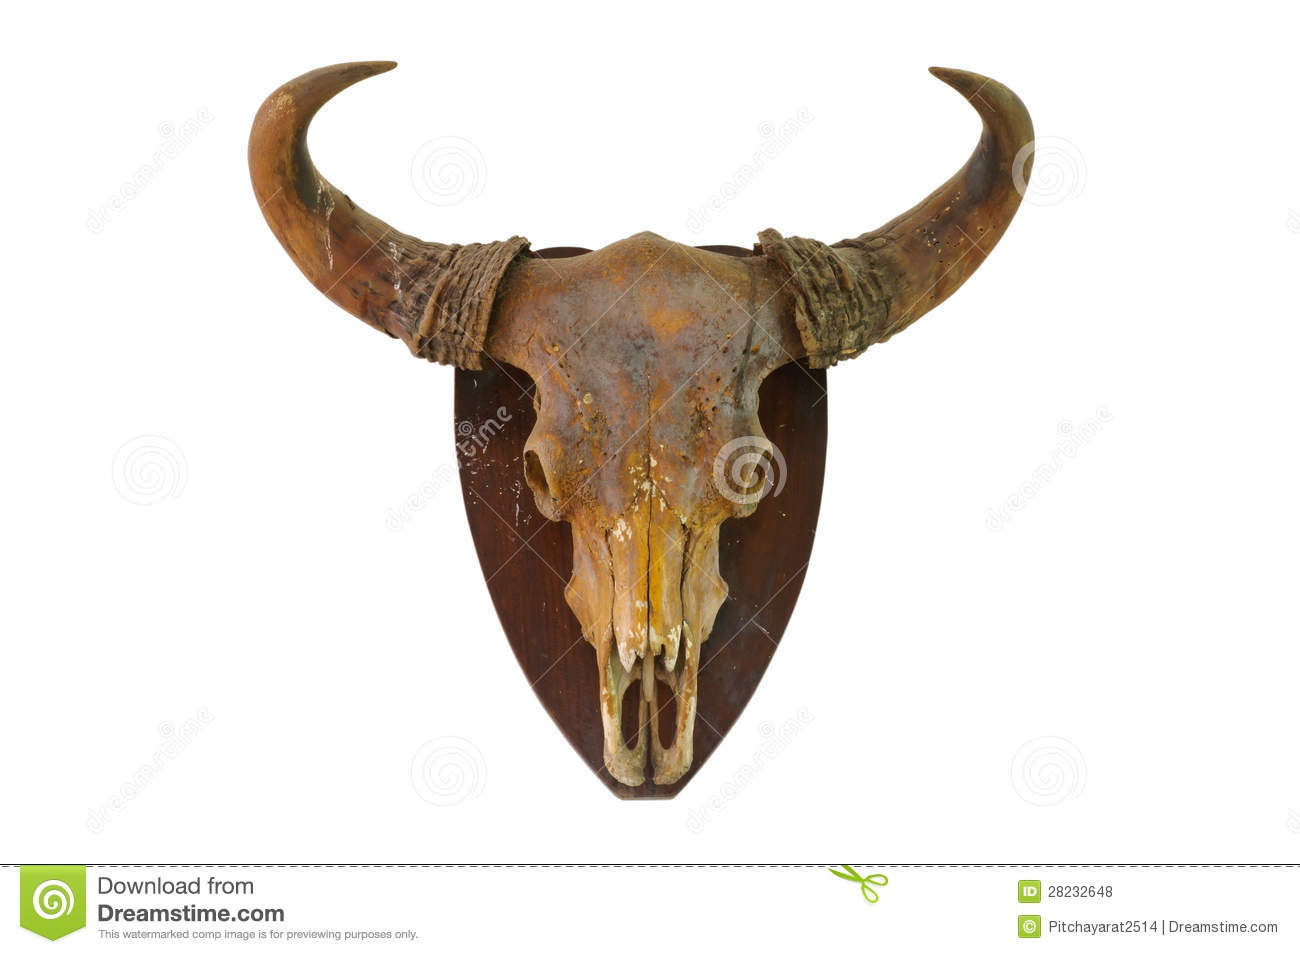 Download Cow skull stock photo. Image of isolated, animal, dead - 28232648